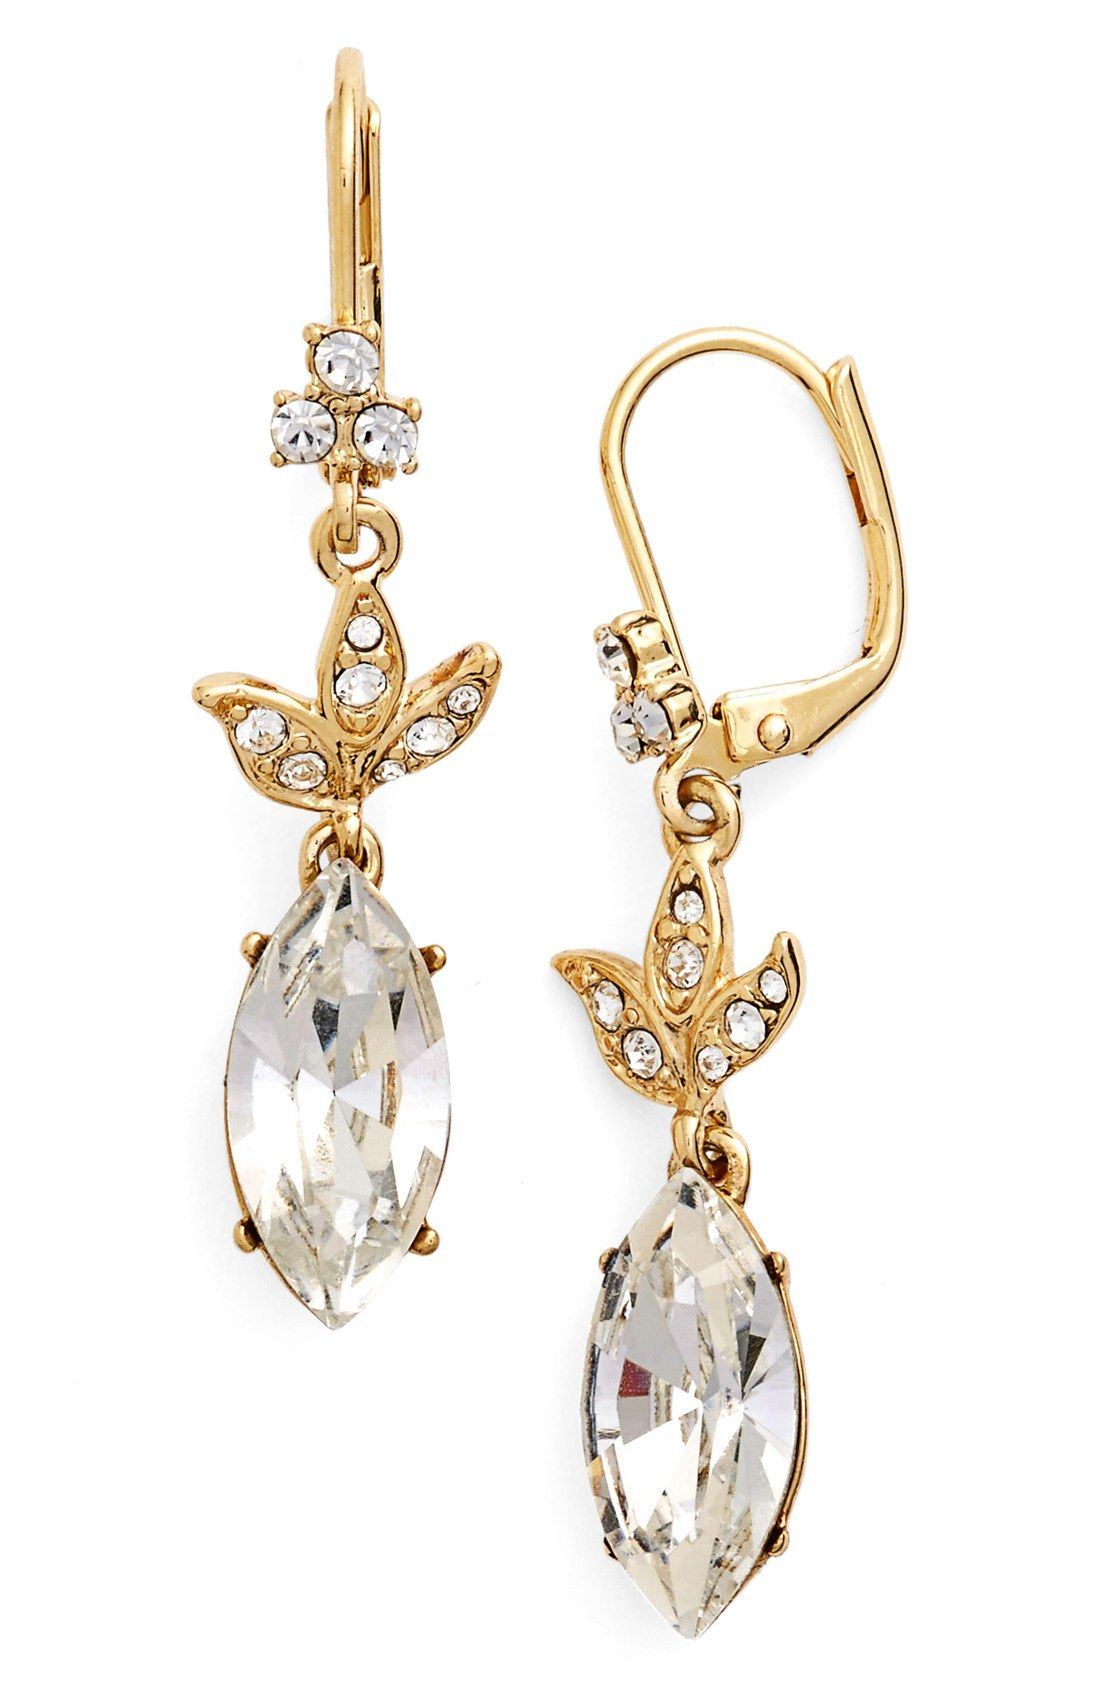 Marquise Cut Crystals Shimmer At The Tips Of Delicate Drop Earrings Accented With A Cer Leaves Love